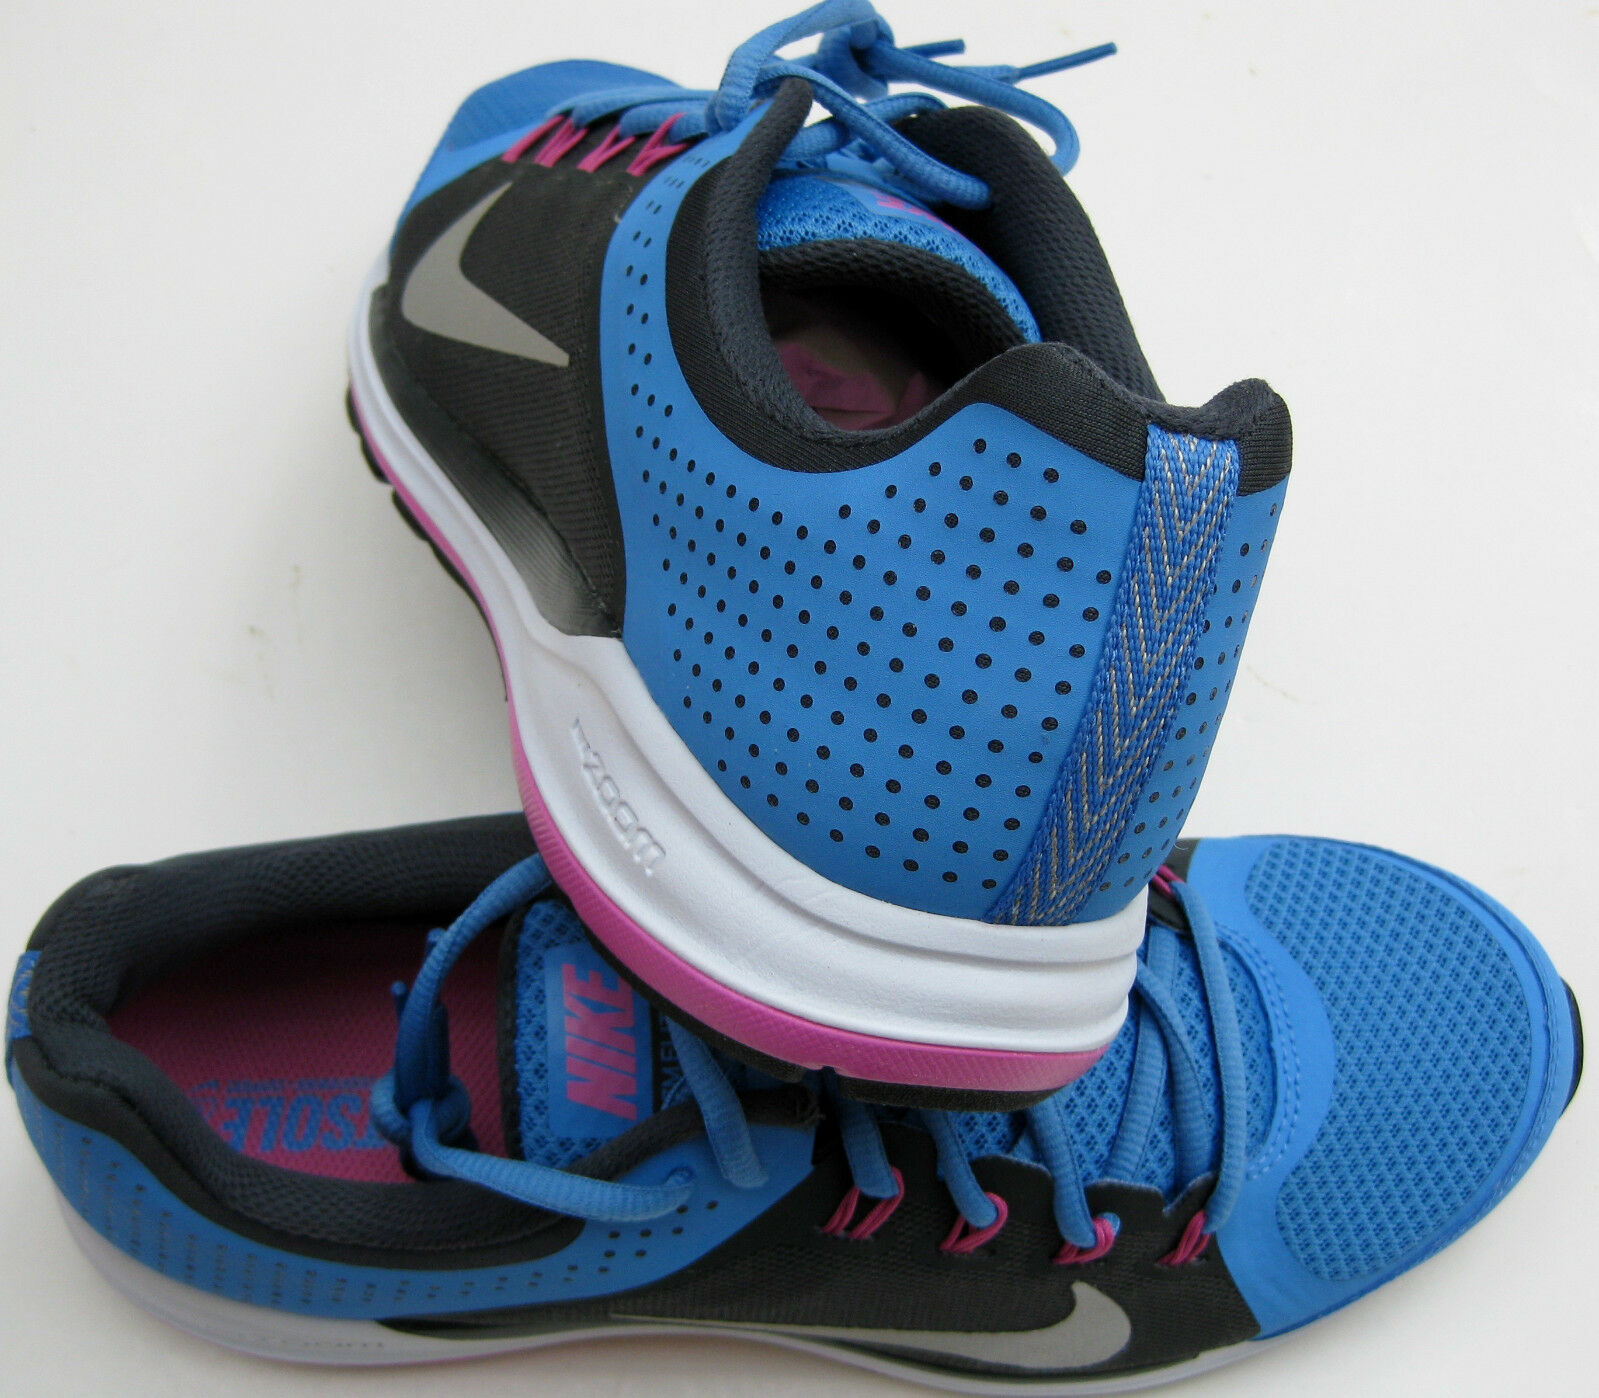 New Nike Zoom Elite+,Vomero,Lunarglide 6 Flash Women Women Women Light Weight Sz 7-11 Pck 1 4c2752